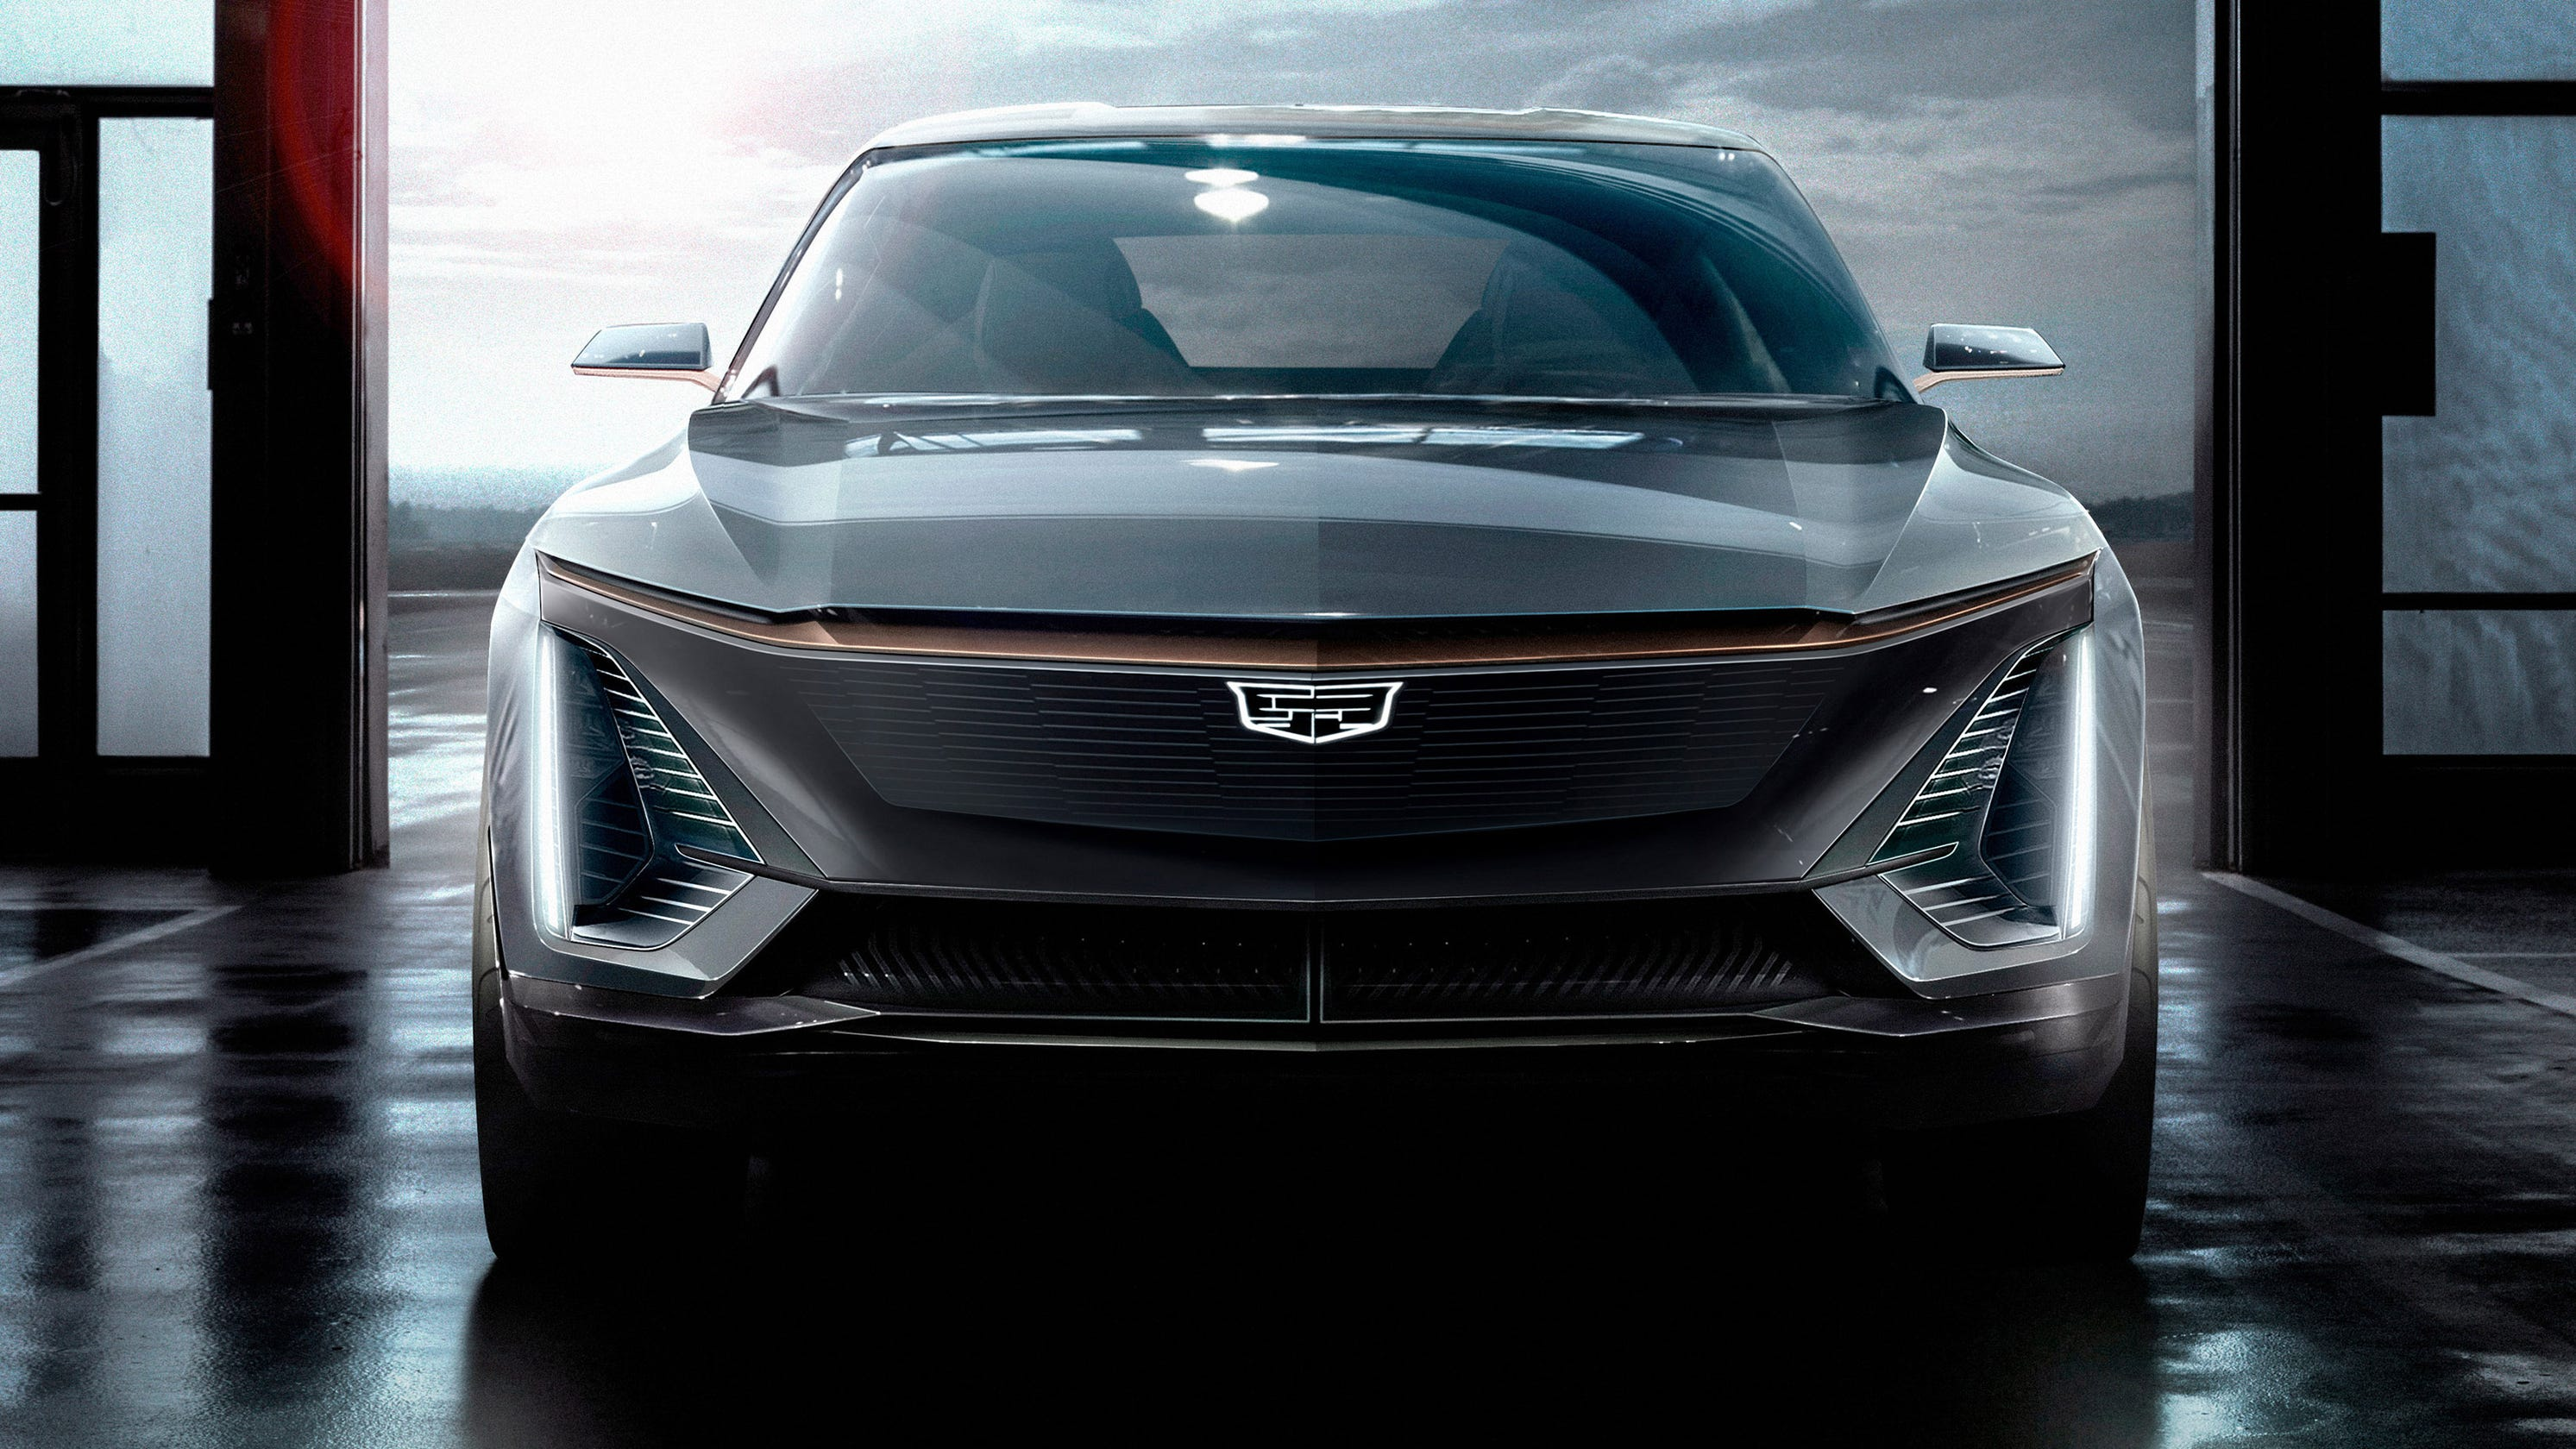 Cadillac Shows New Ev As Brand Looks To Future